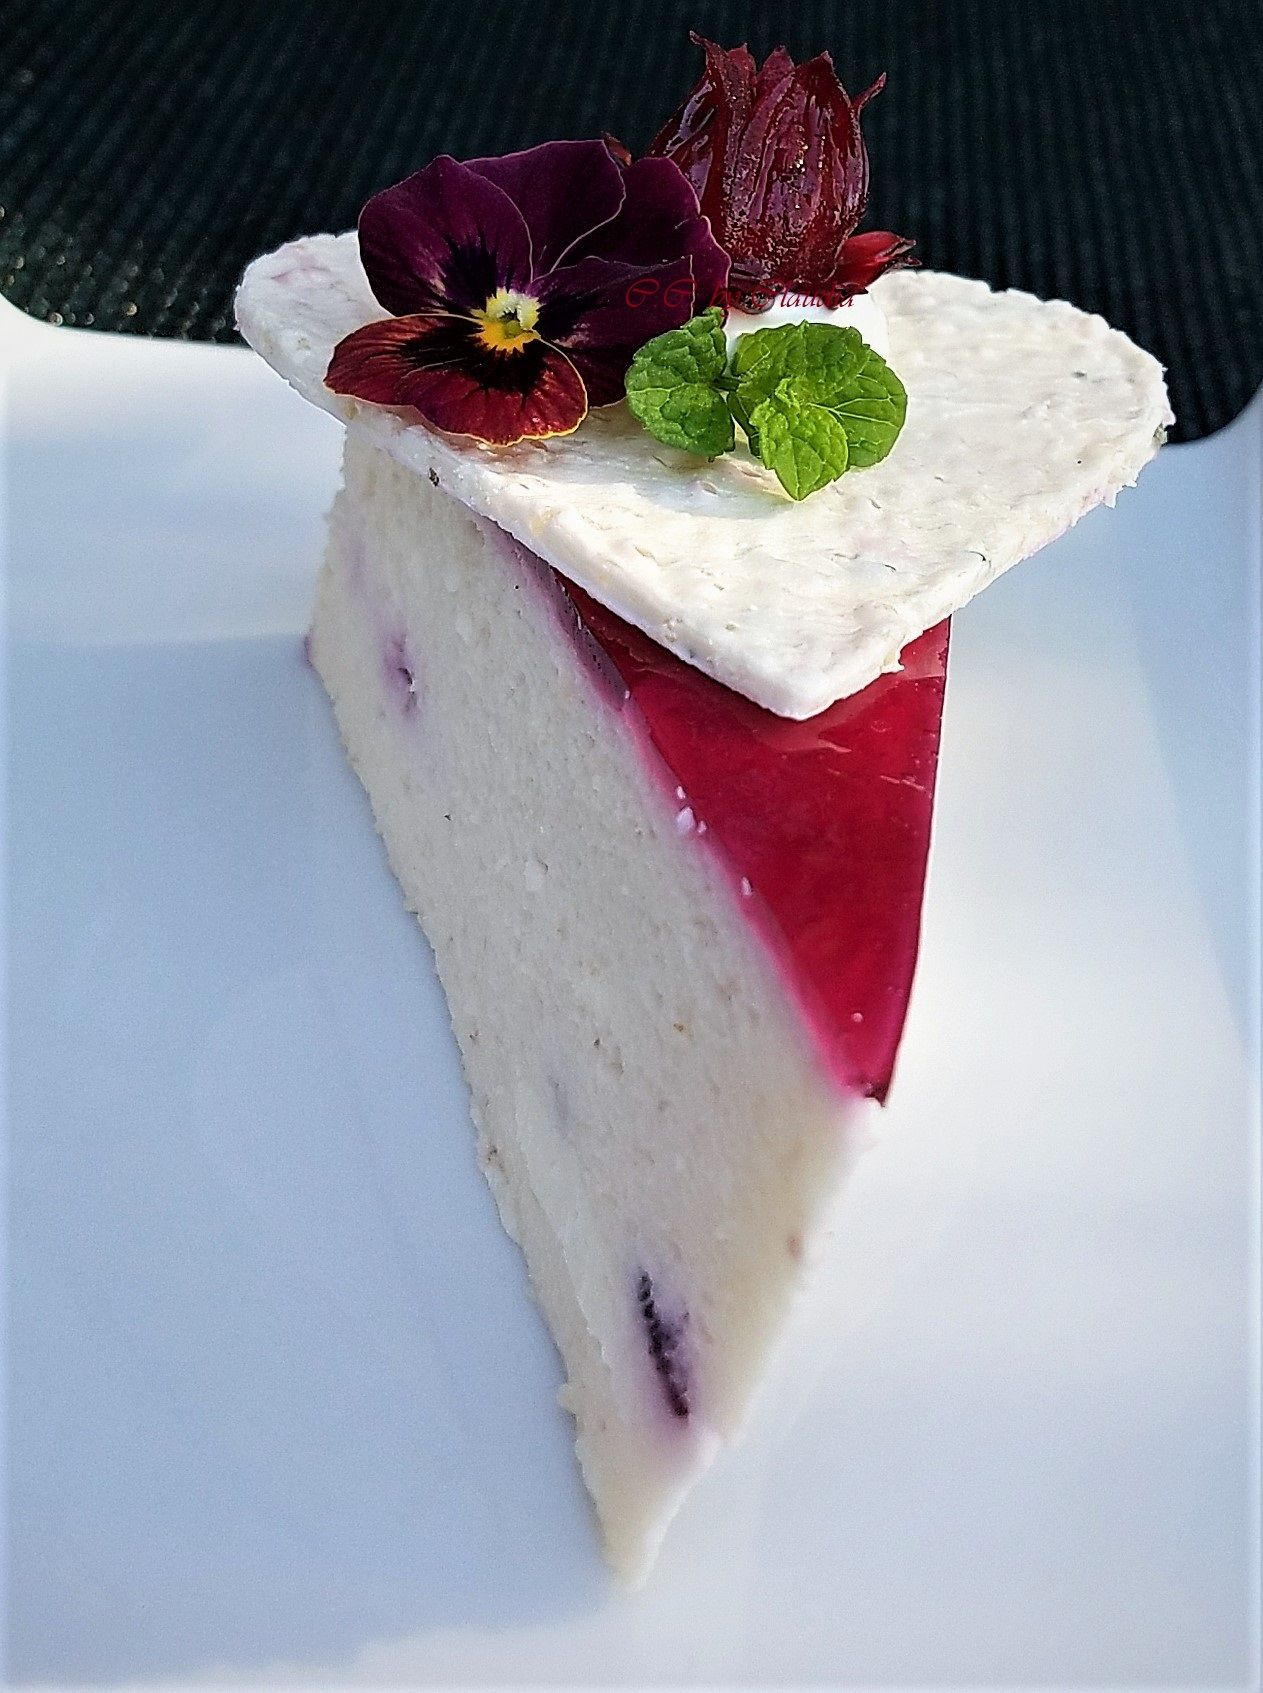 Lychee Cheesecake With Homemade Hibiscus Flowers In Rose Syrup